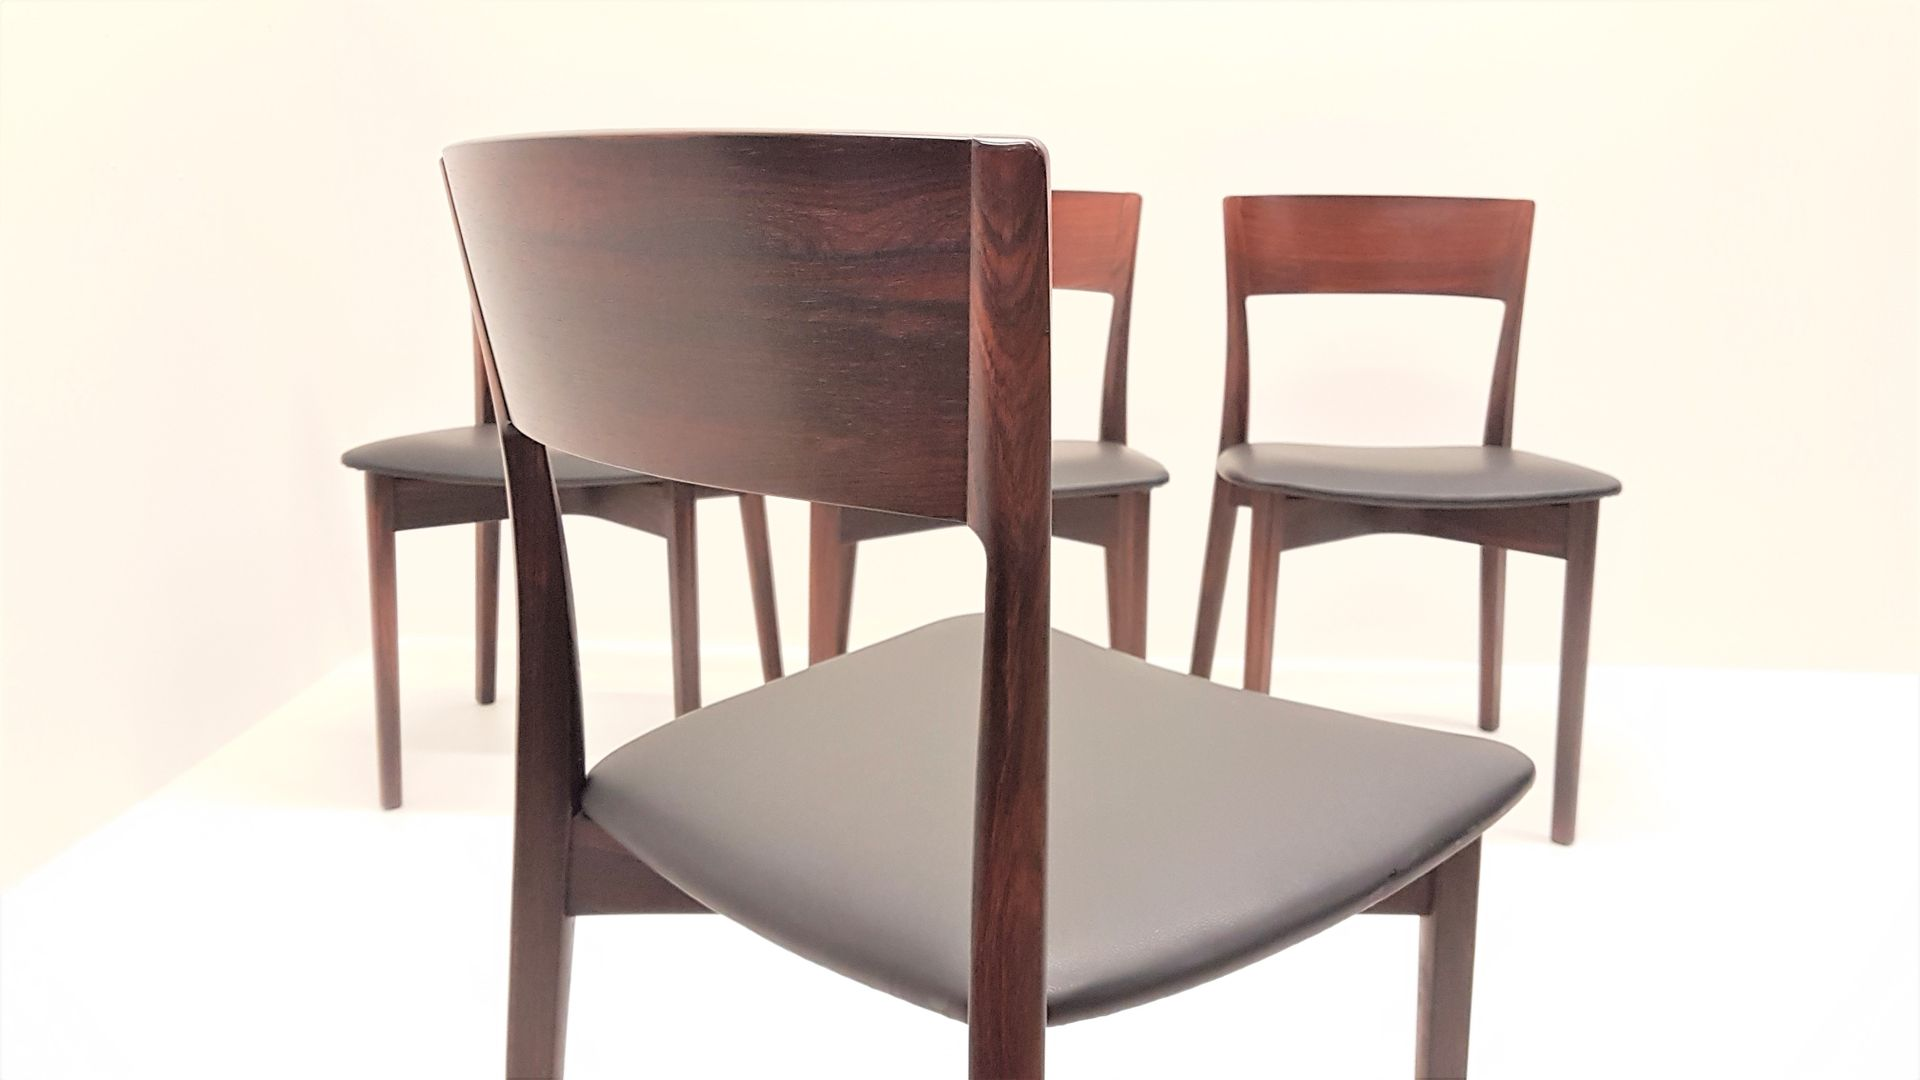 Mid Century Modern Rosewood Dining Chairs 1960s Set of 4  : mid century modern rosewood dining chairs 1960s set of 4 3 from www.pamono.com size 1920 x 1080 jpeg 80kB